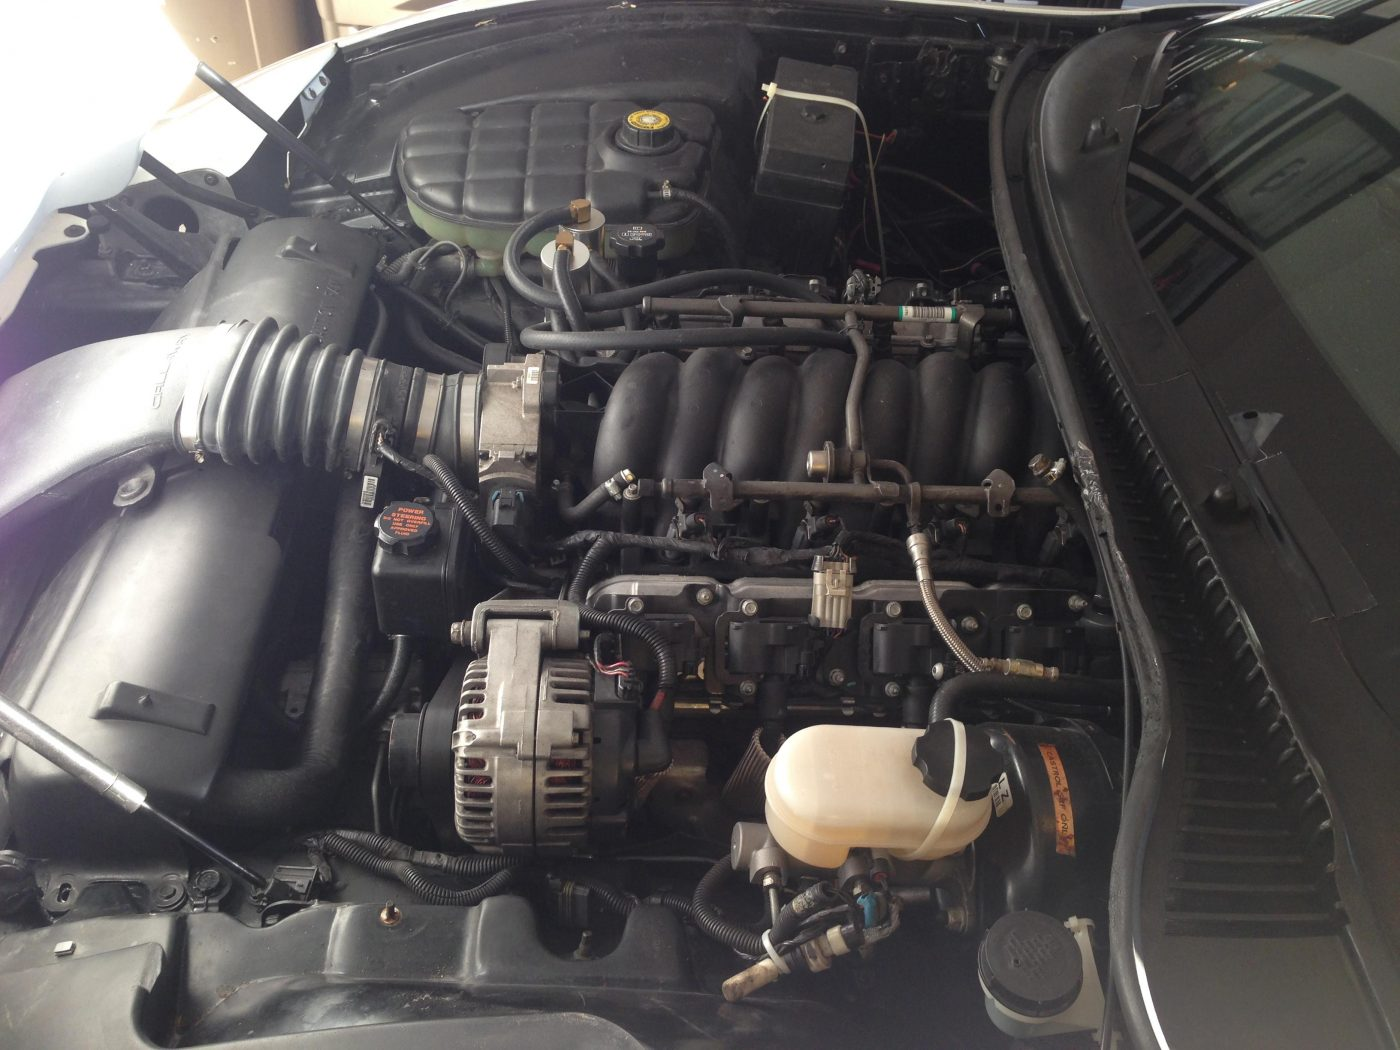 1999 Corvette Engine